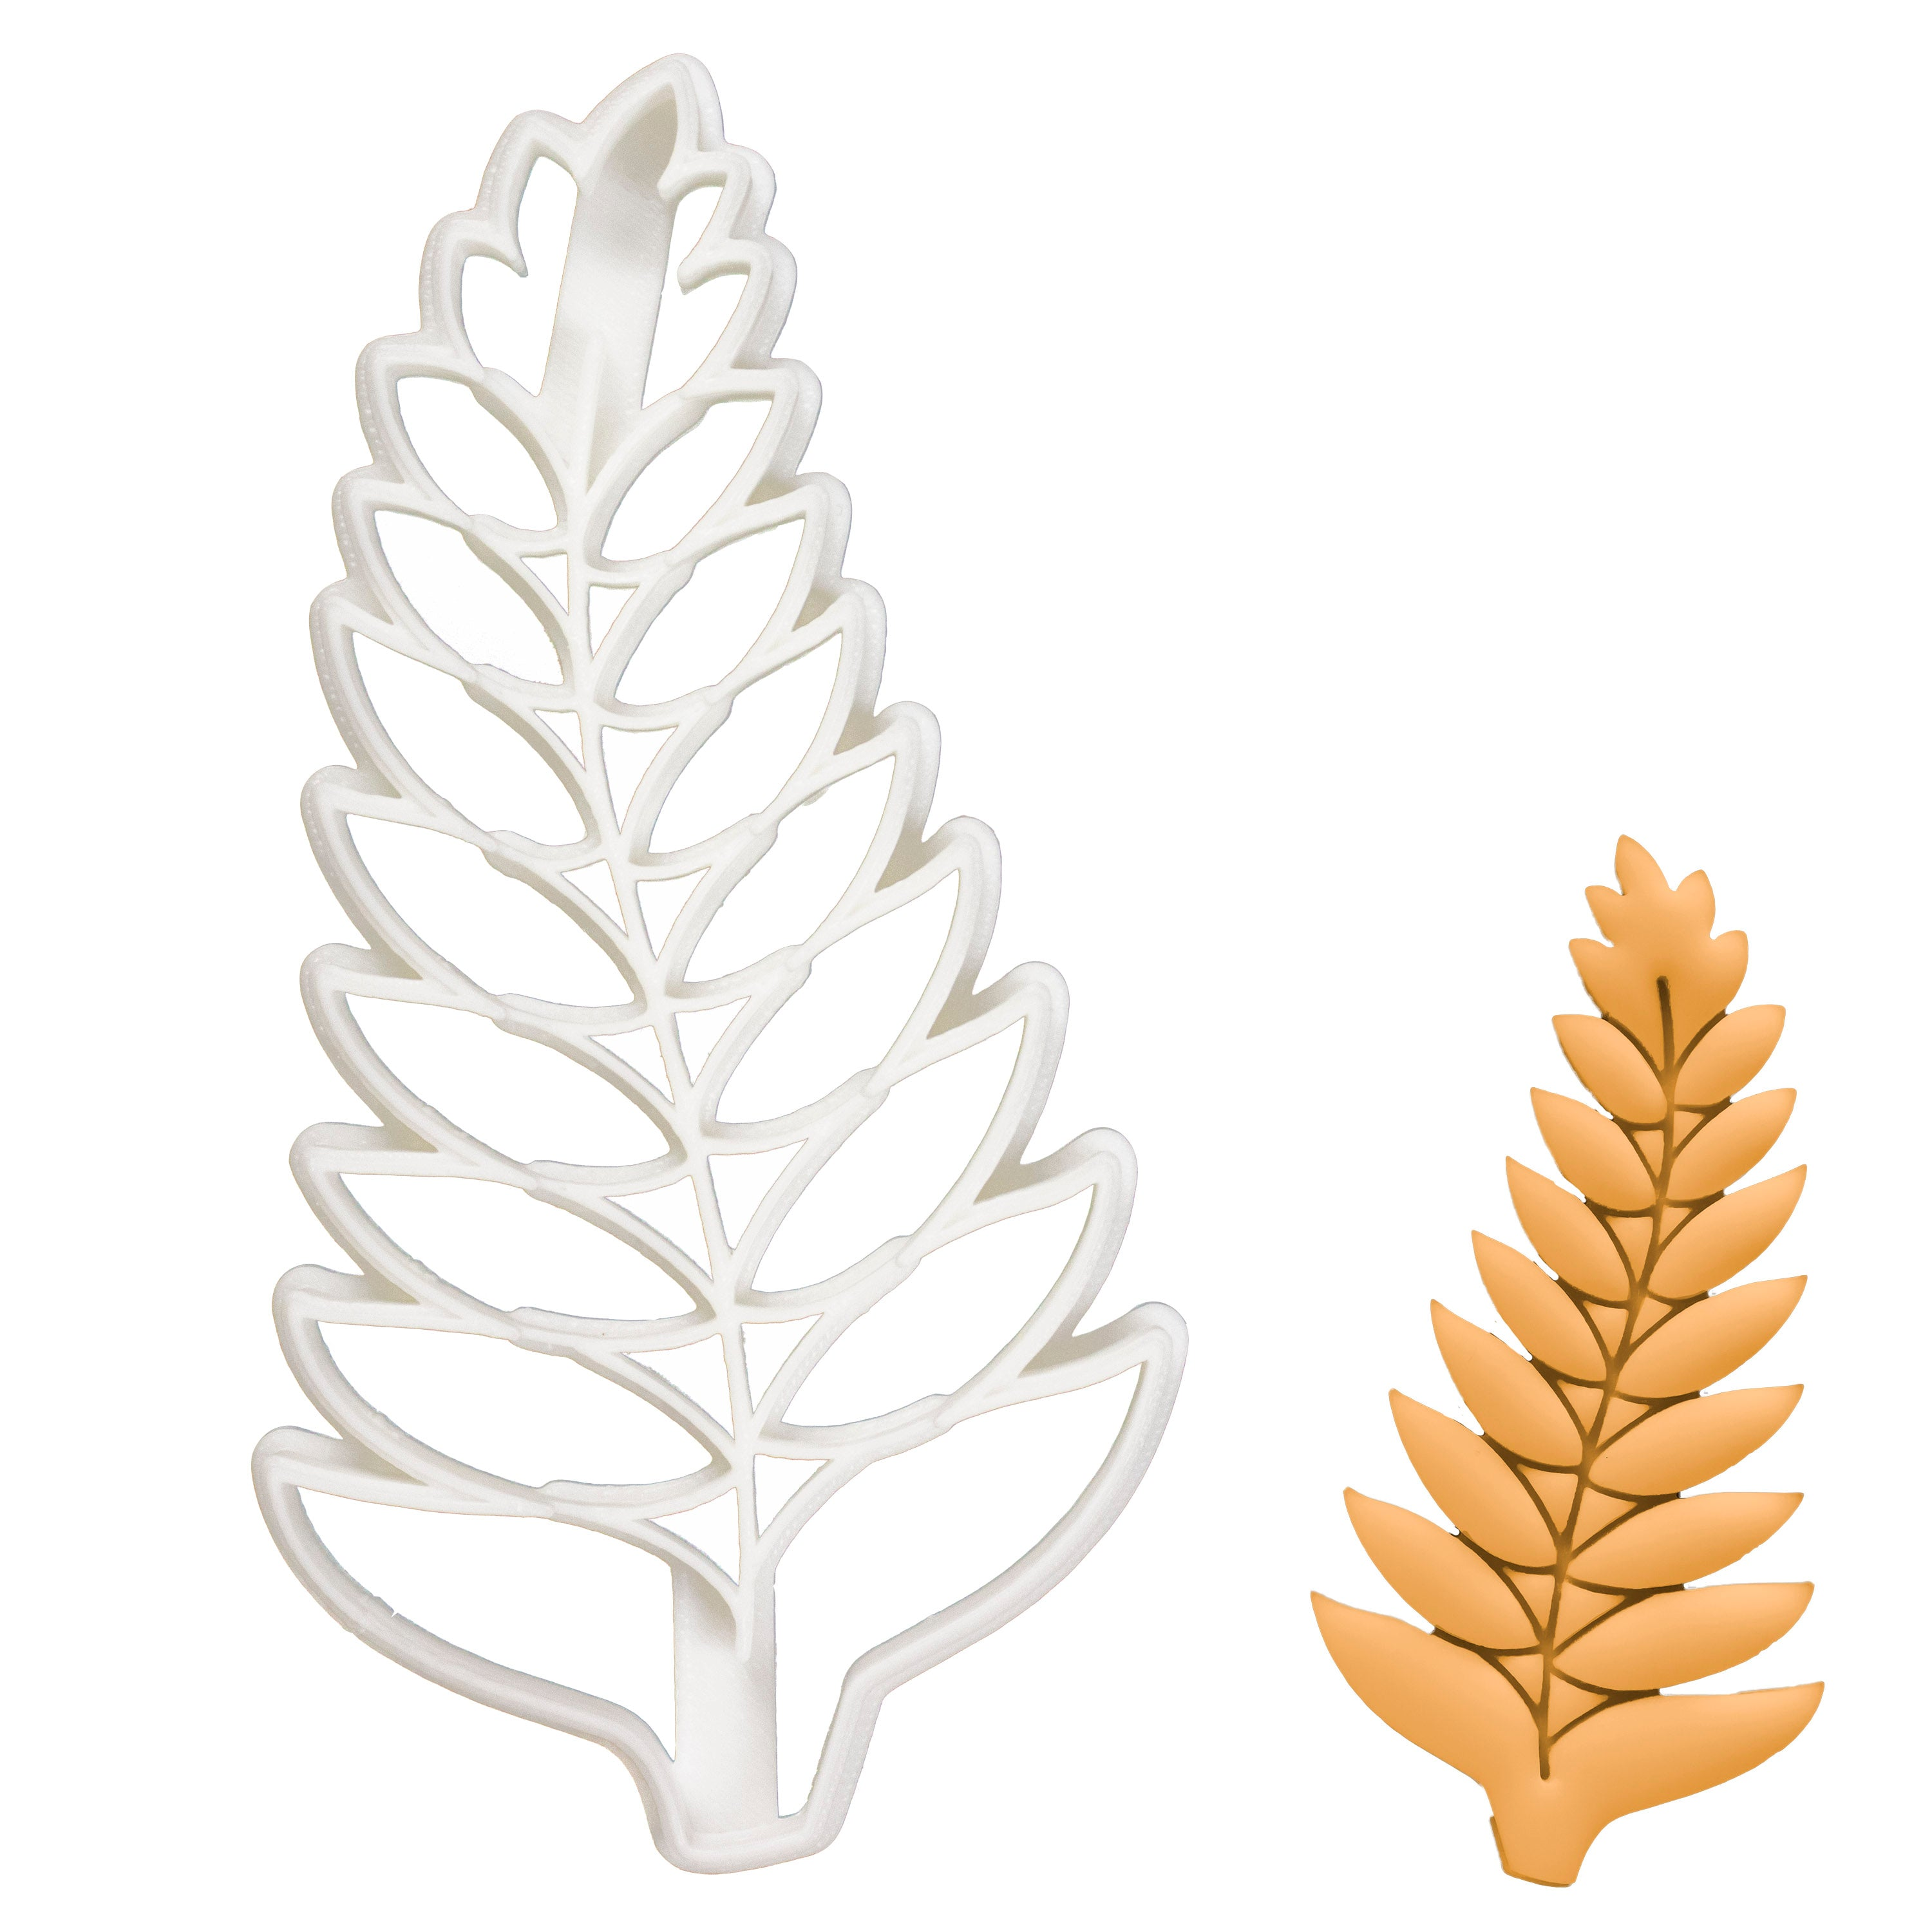 Fern Leaf cookie cutter